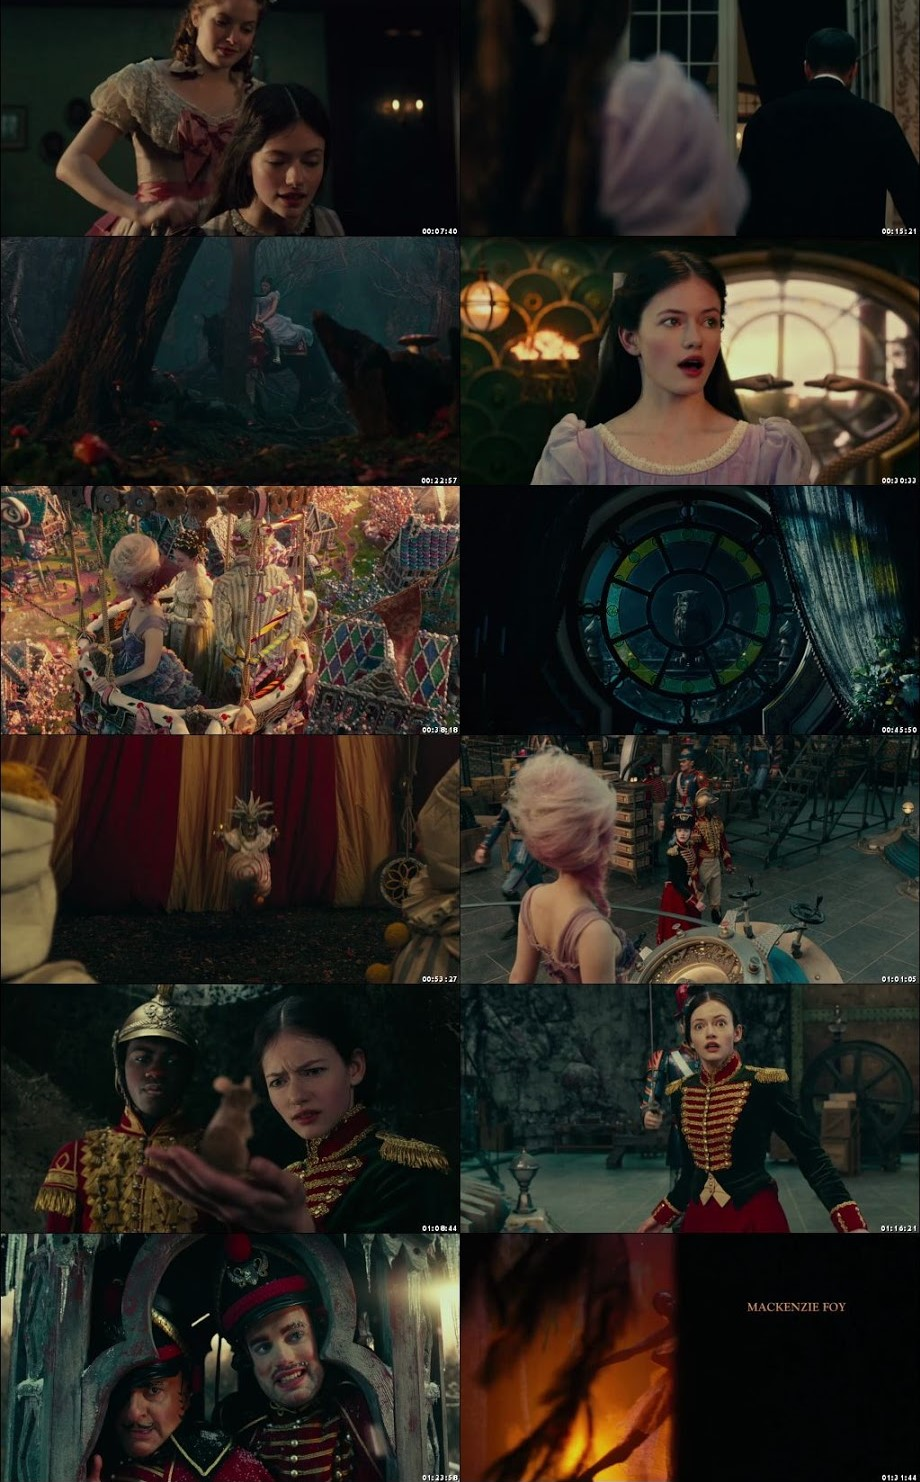 The Nutcracker and the Four Realms 2018 Full Movie Online Watch